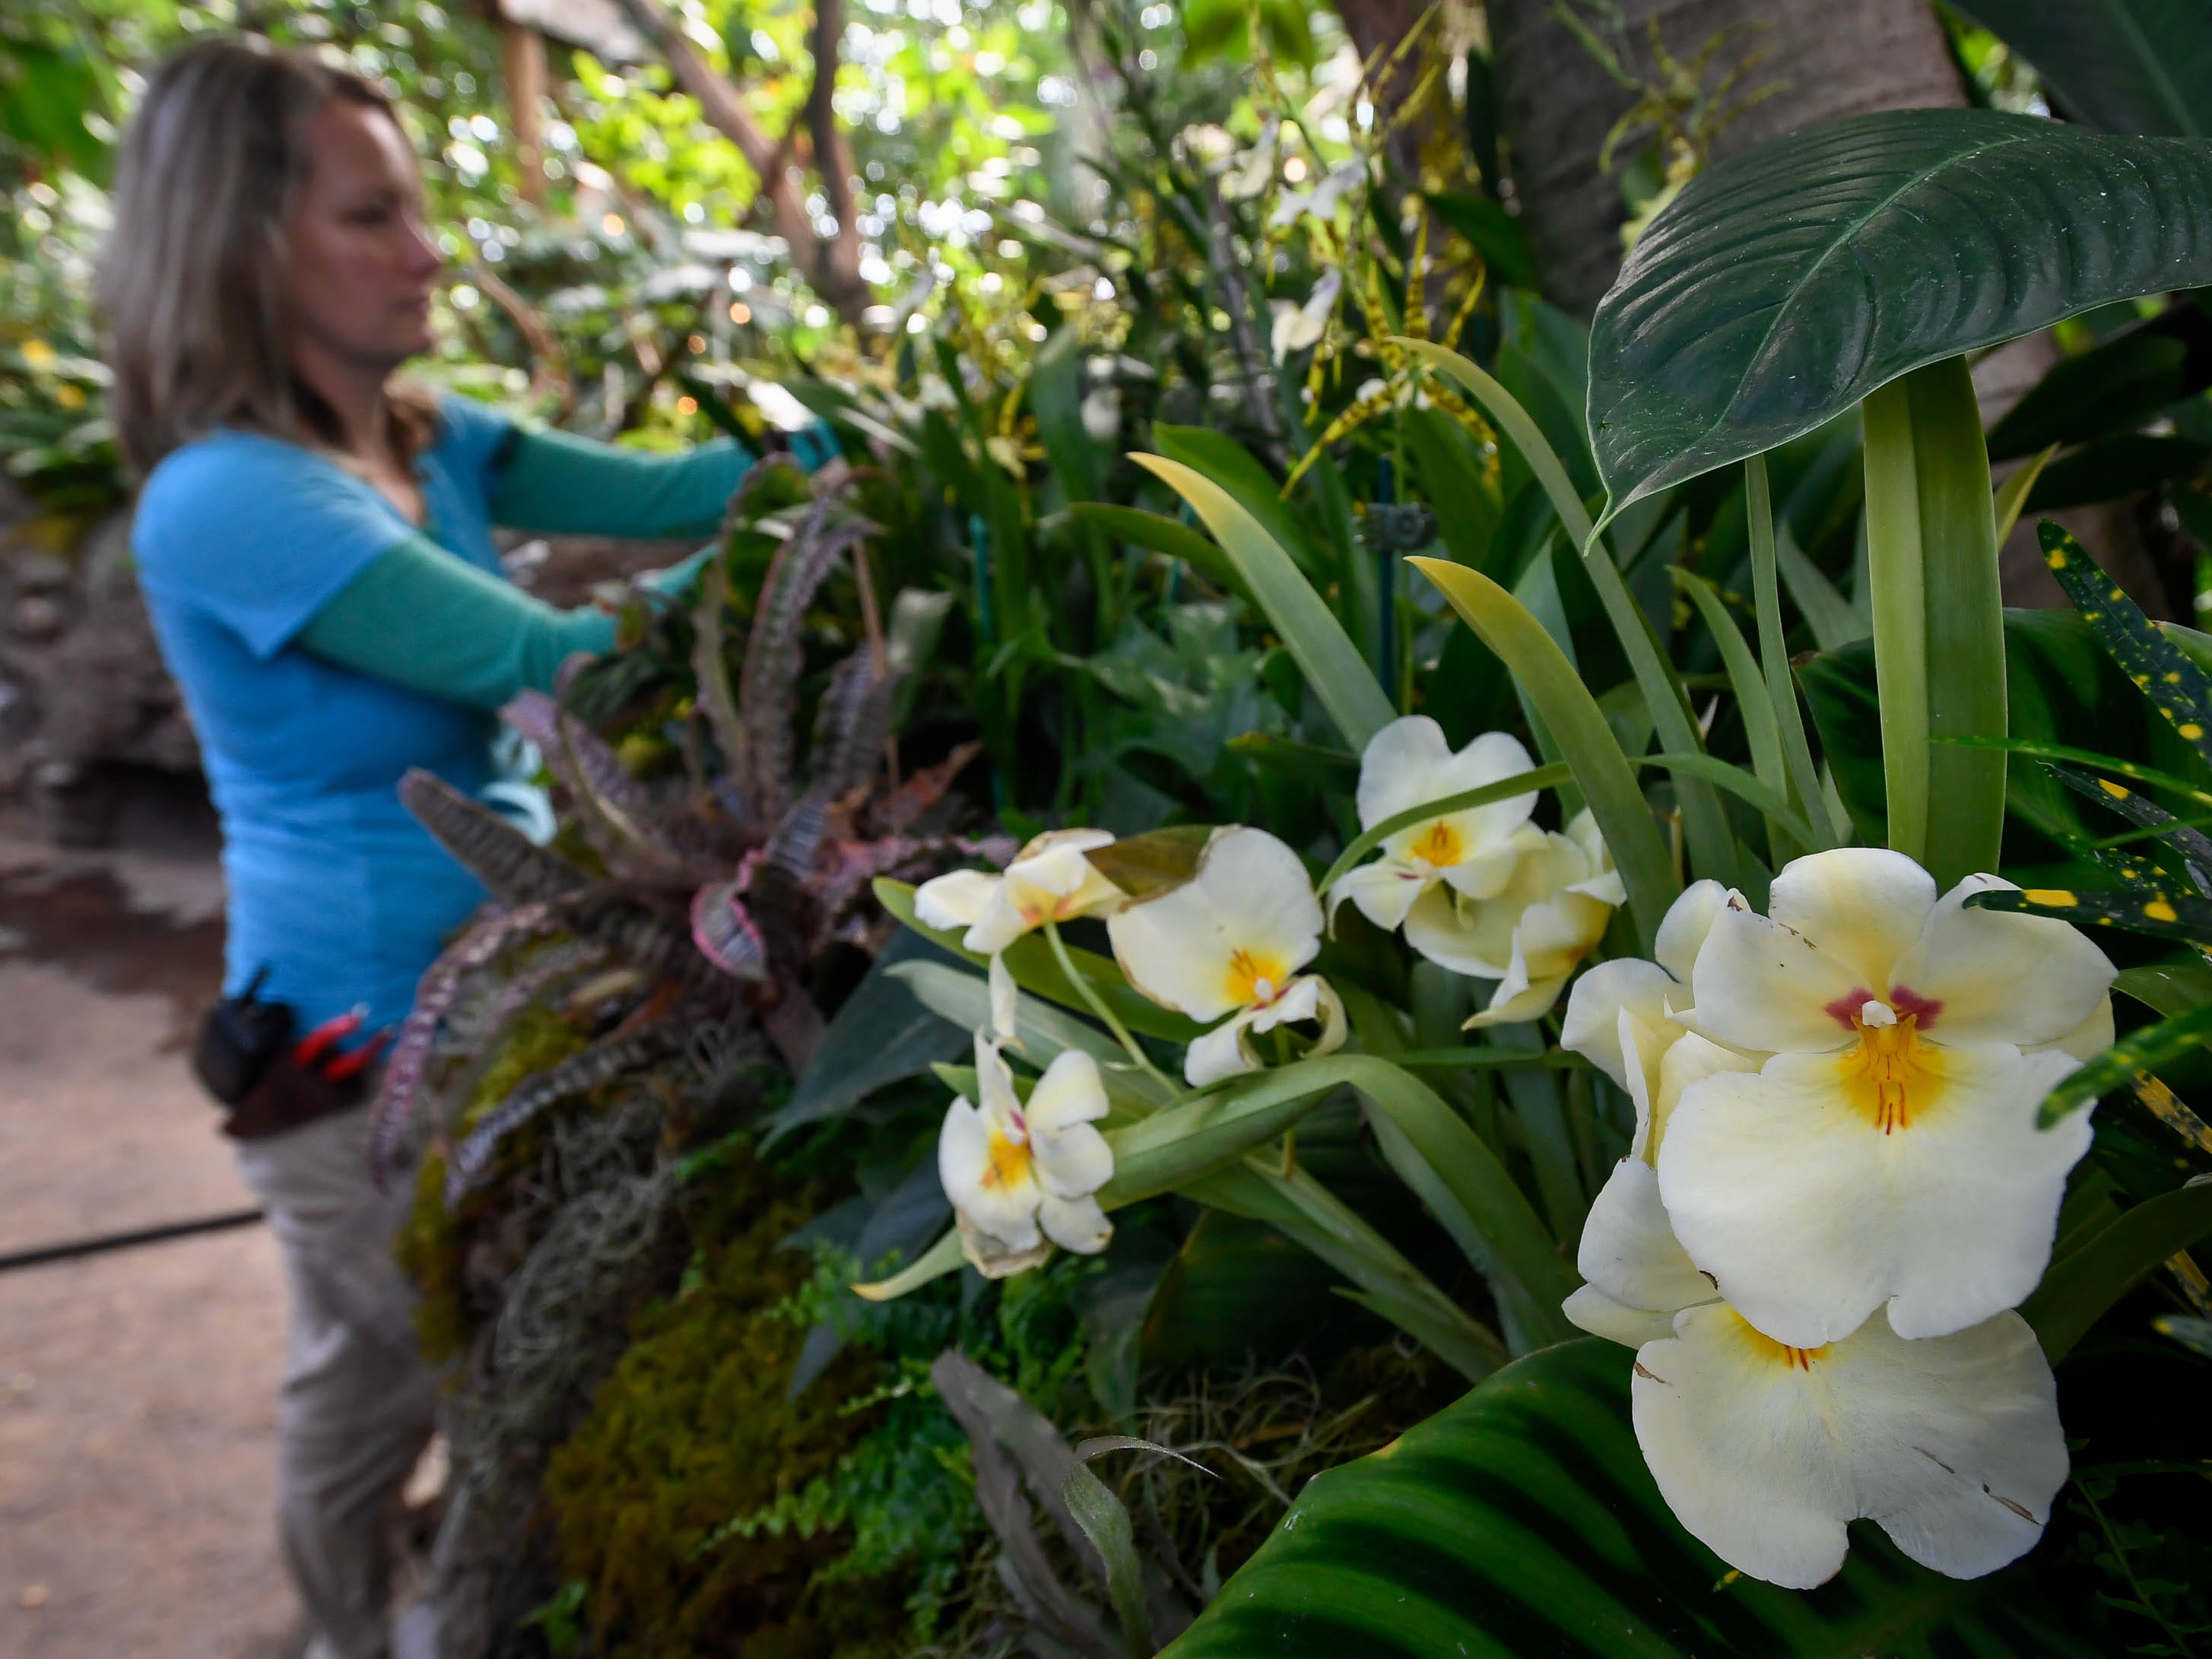 With a variety of Phalaenopsis Orchid blooming in the foreground, Mesker Park Zoo horticulturist Misty Minar prepares for Saturday's Orchid Escape Opening Friday, February 8, 2019.